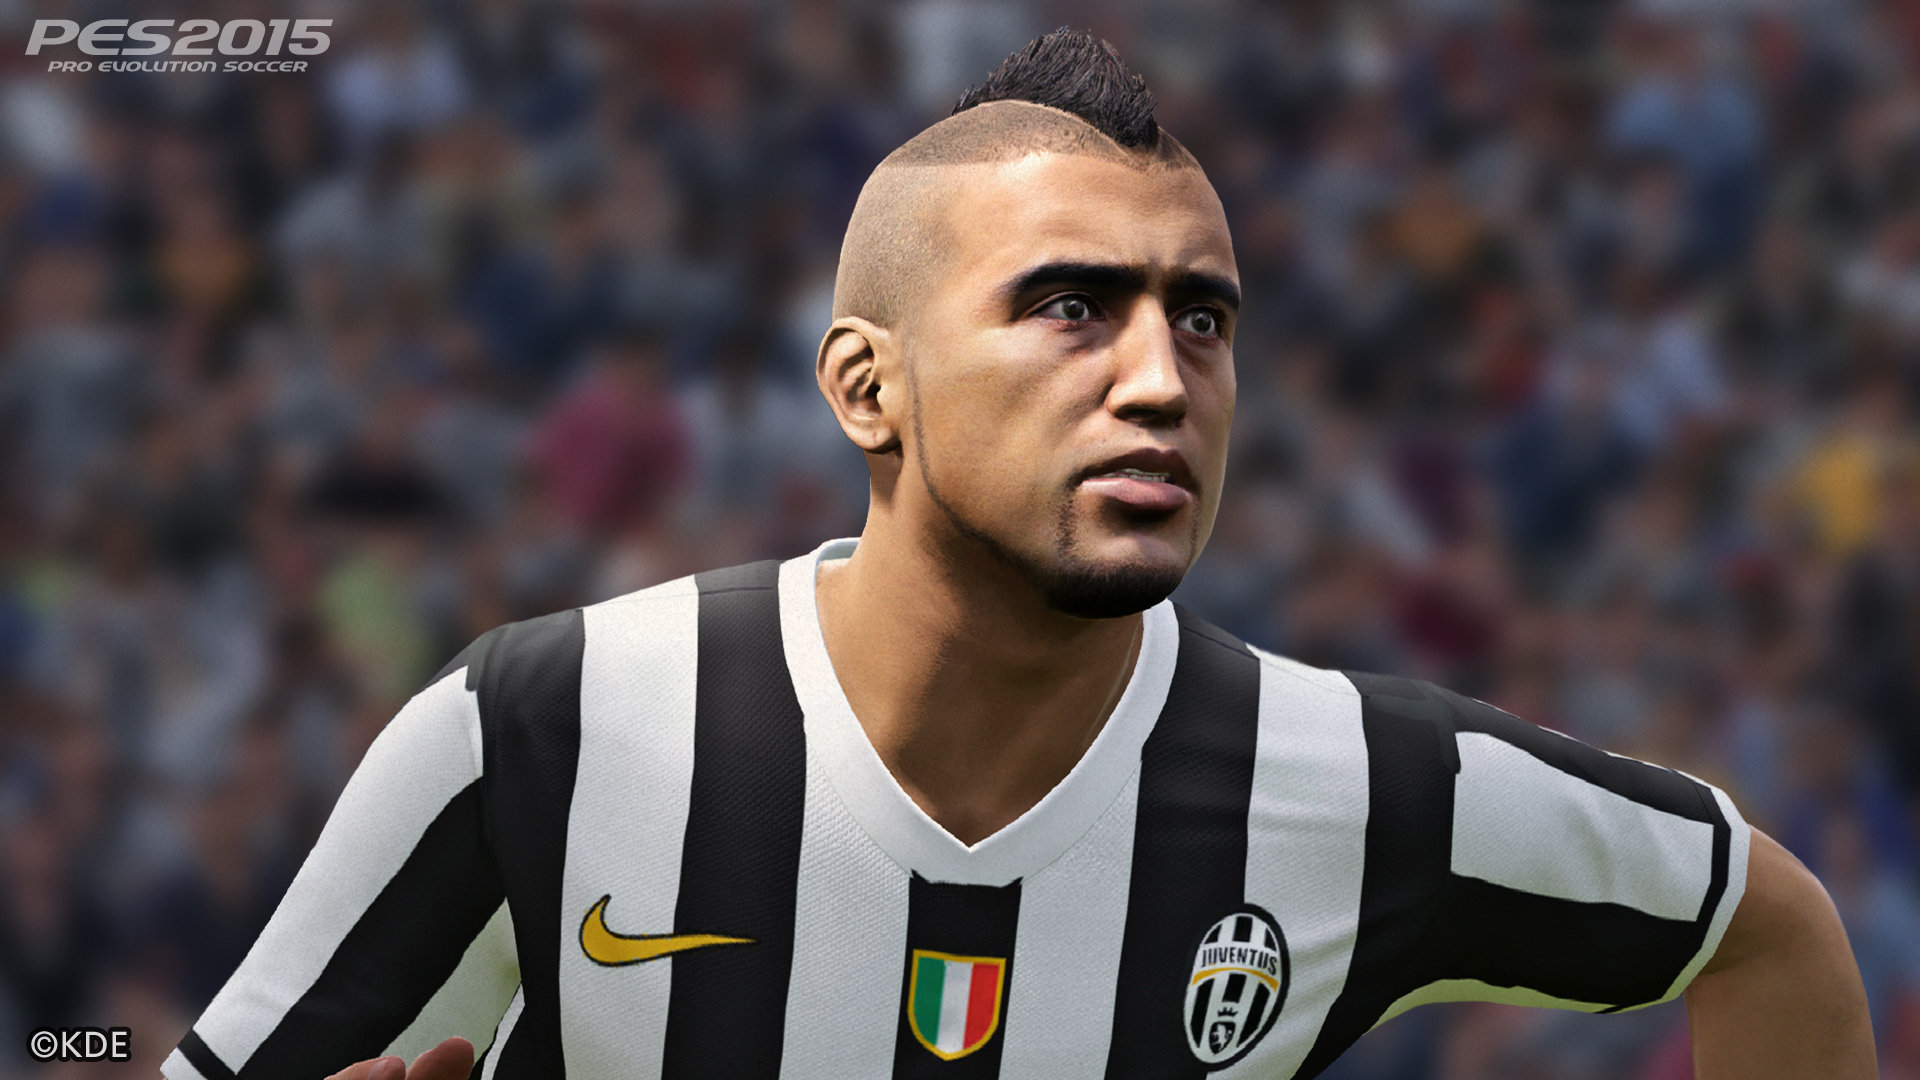 games pes 2015 3d 320x240 jar downloads